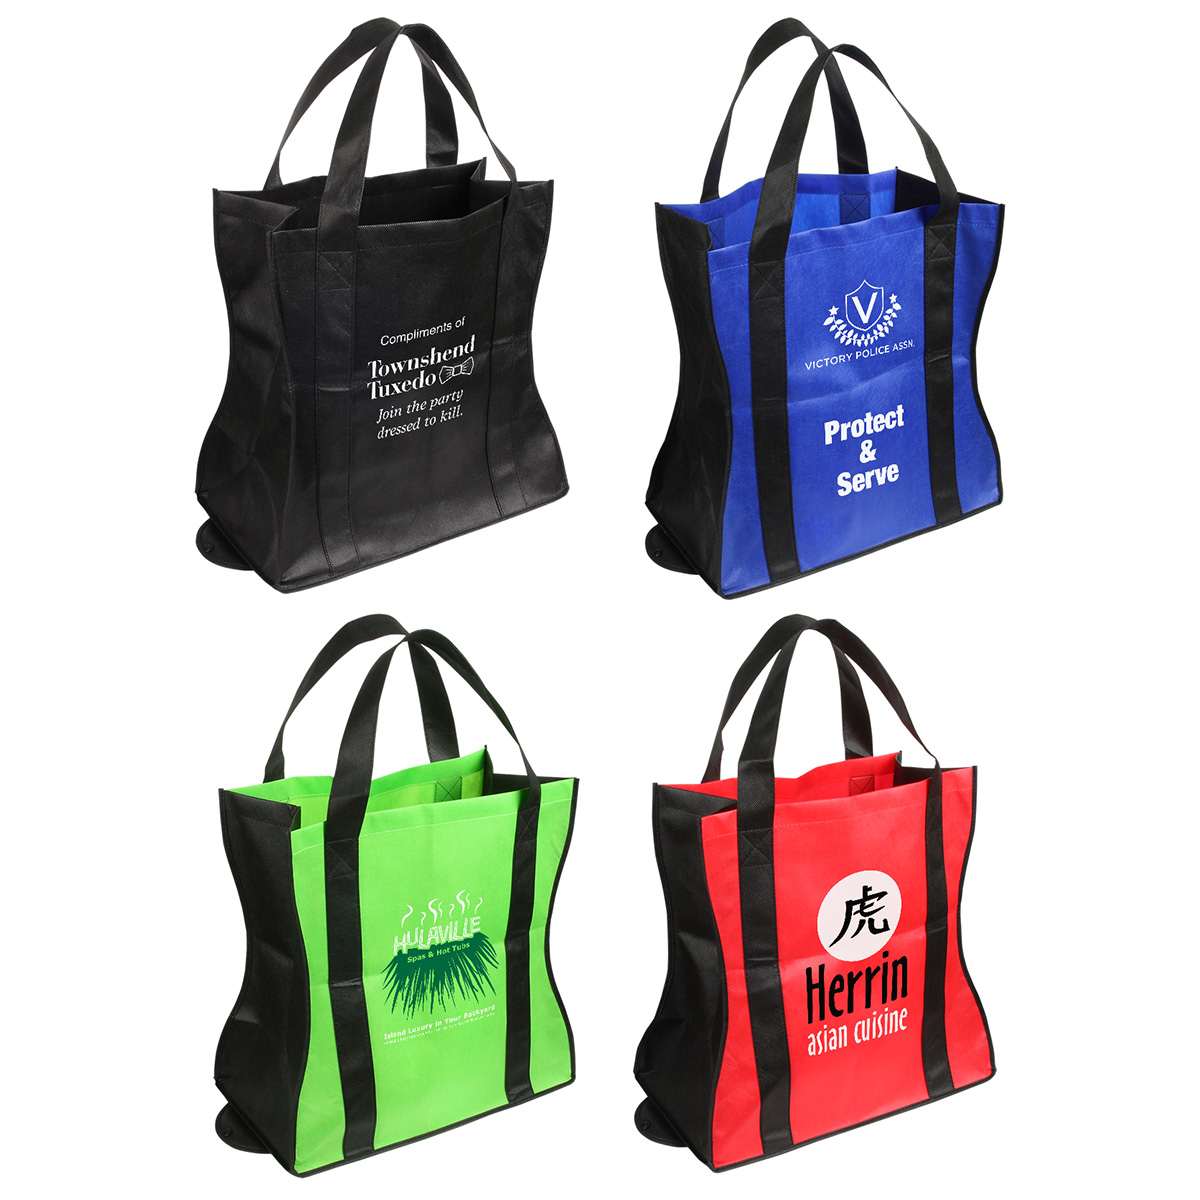 Wave Rider Folding Tote Bag, WBA-WR10, 1 Colour Imprint